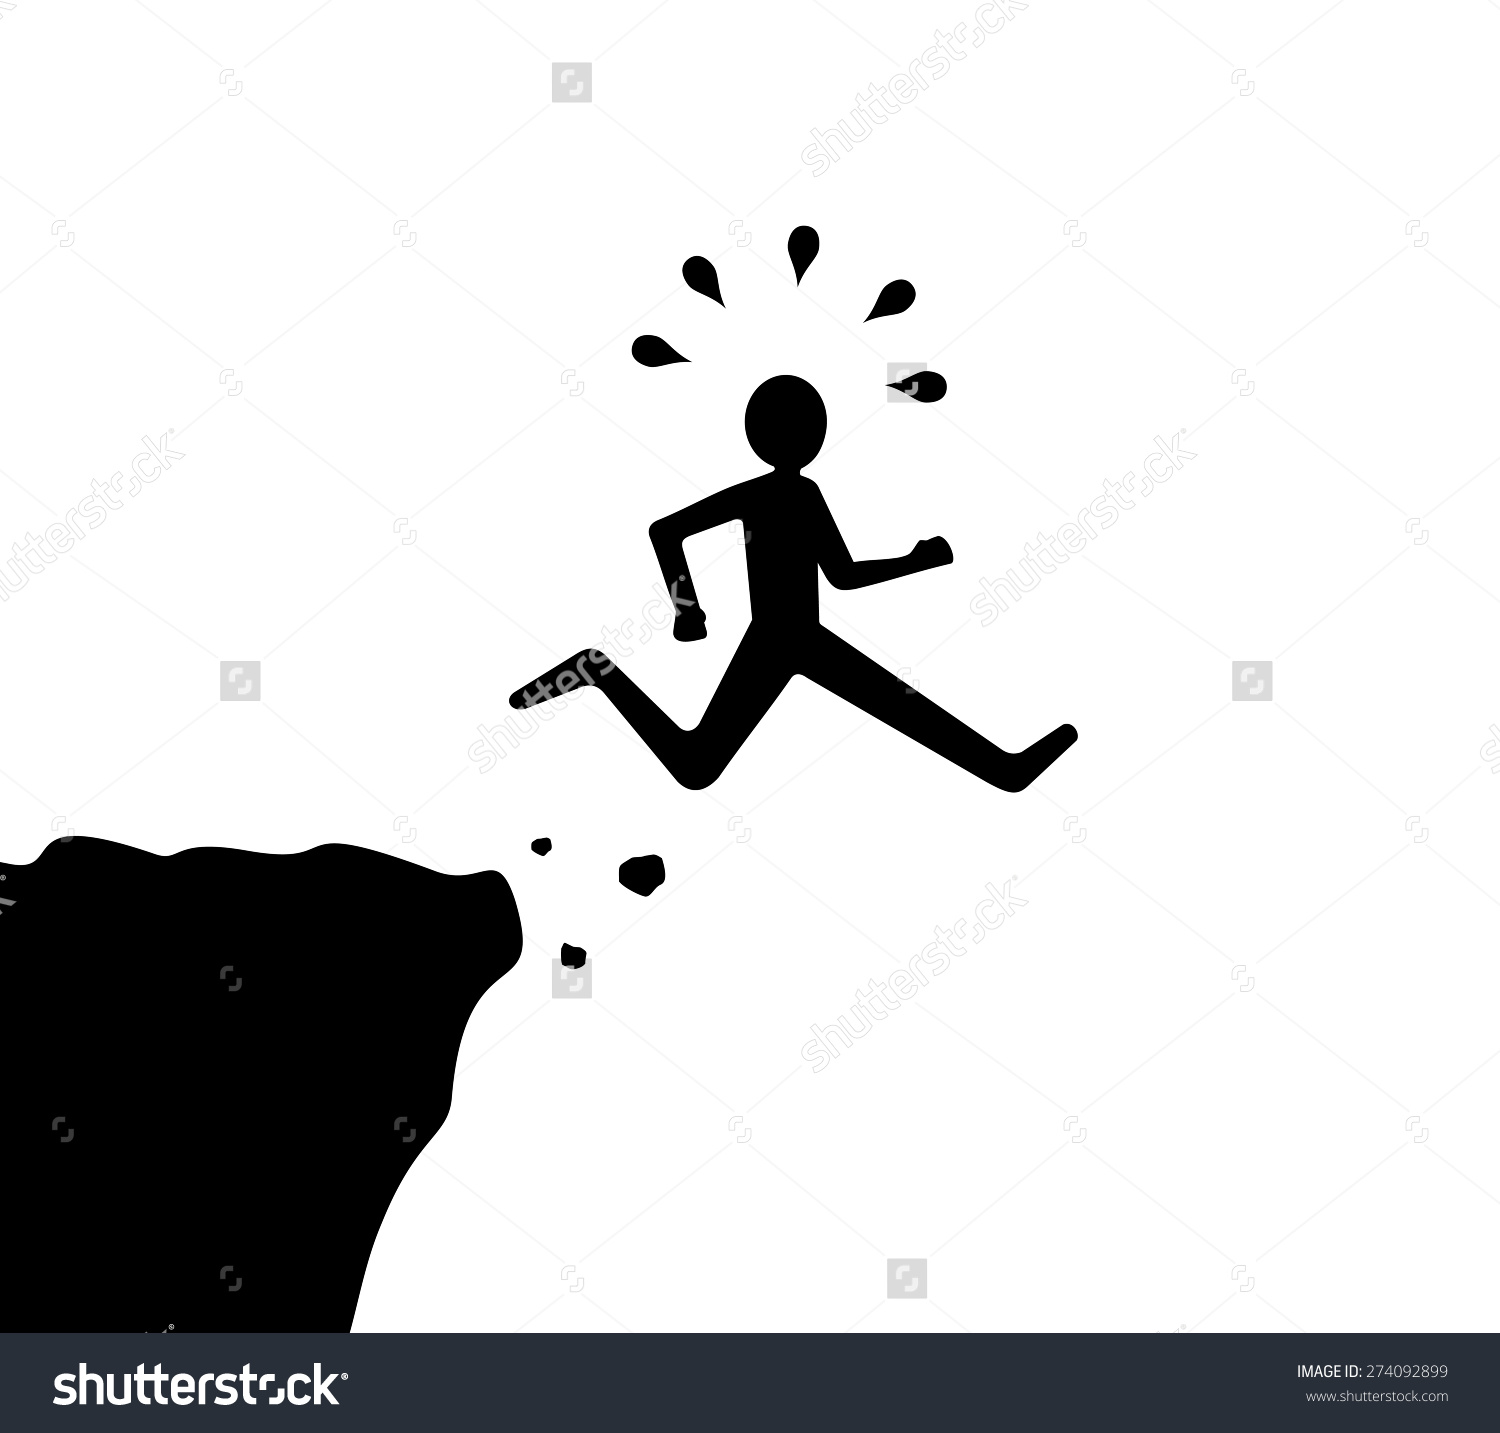 People jumping off buildings clipart.